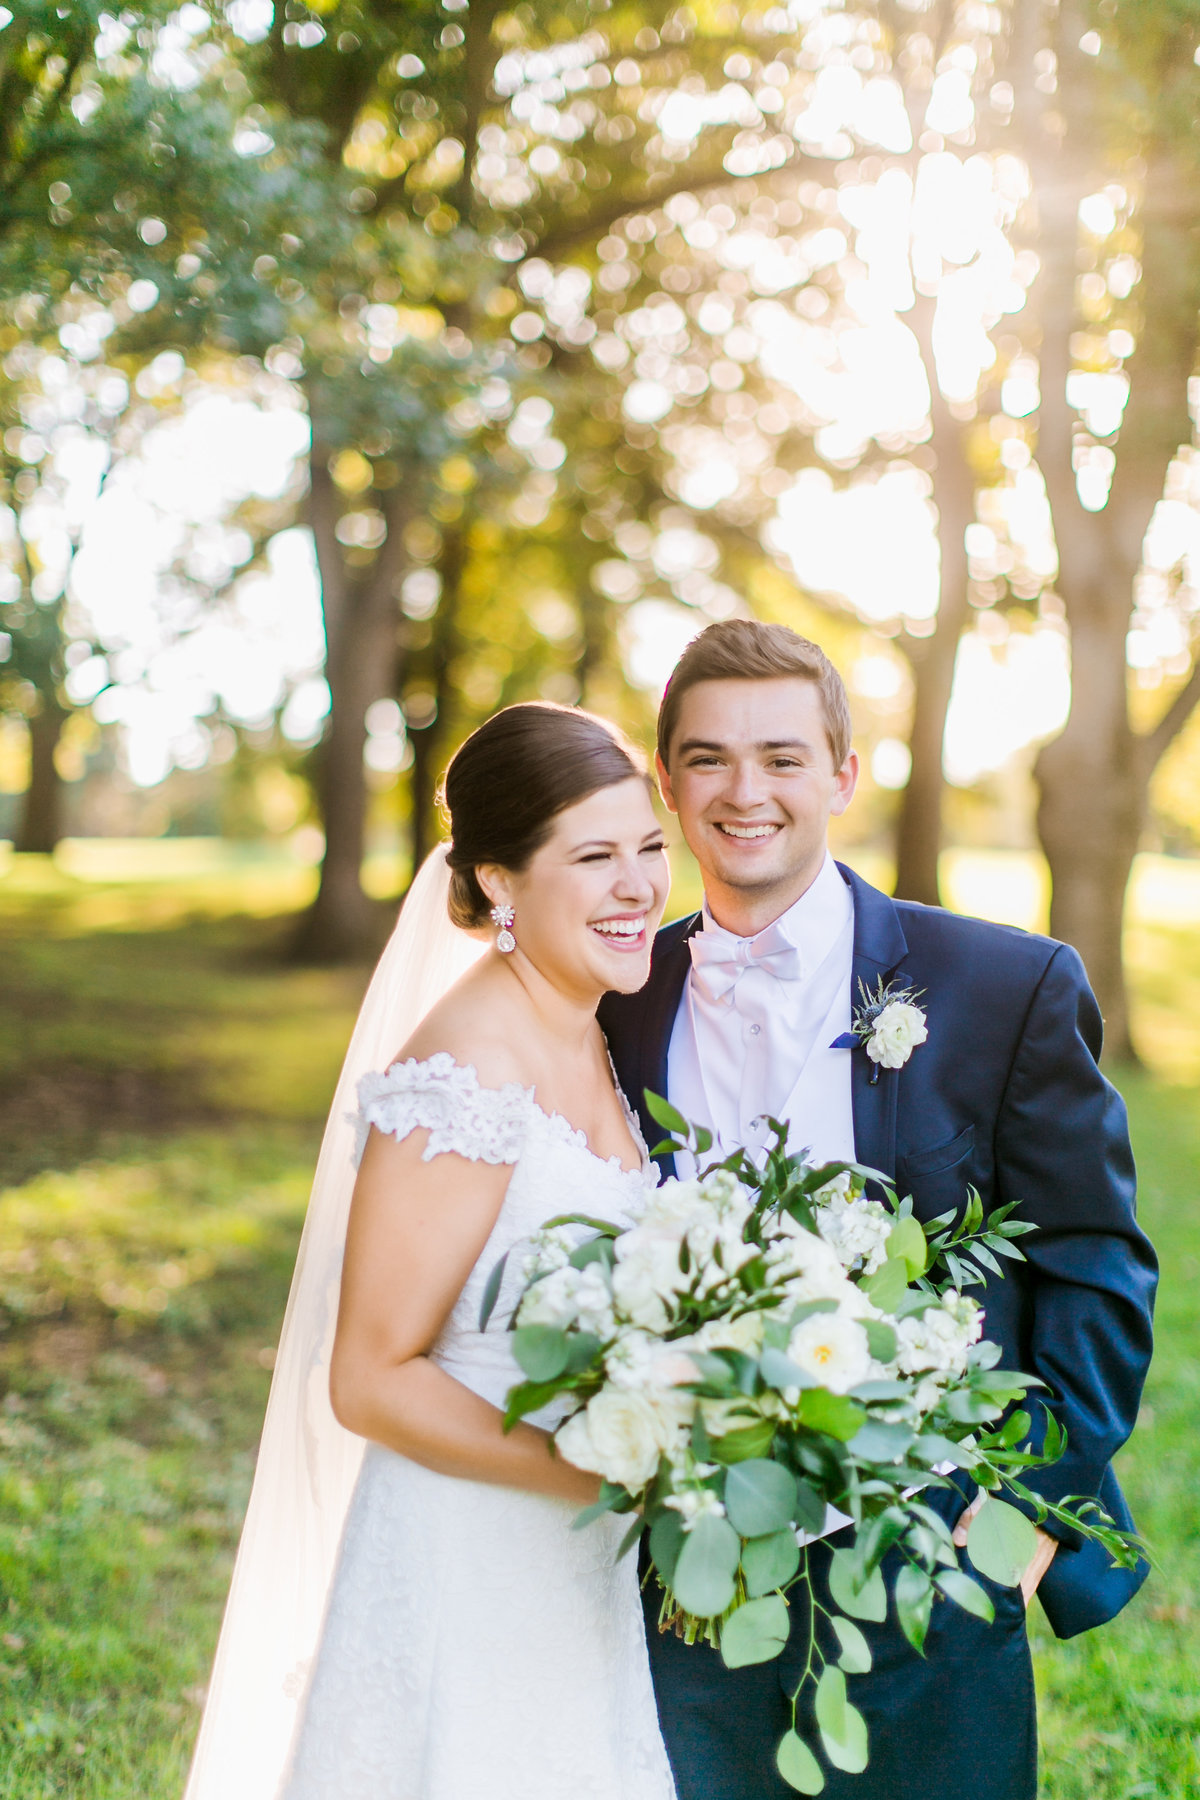 TheGalleryEventSpaceWedding_KansascityWedding_TaylorJared_CatherineRhodesPhotography-3983-2-Edit